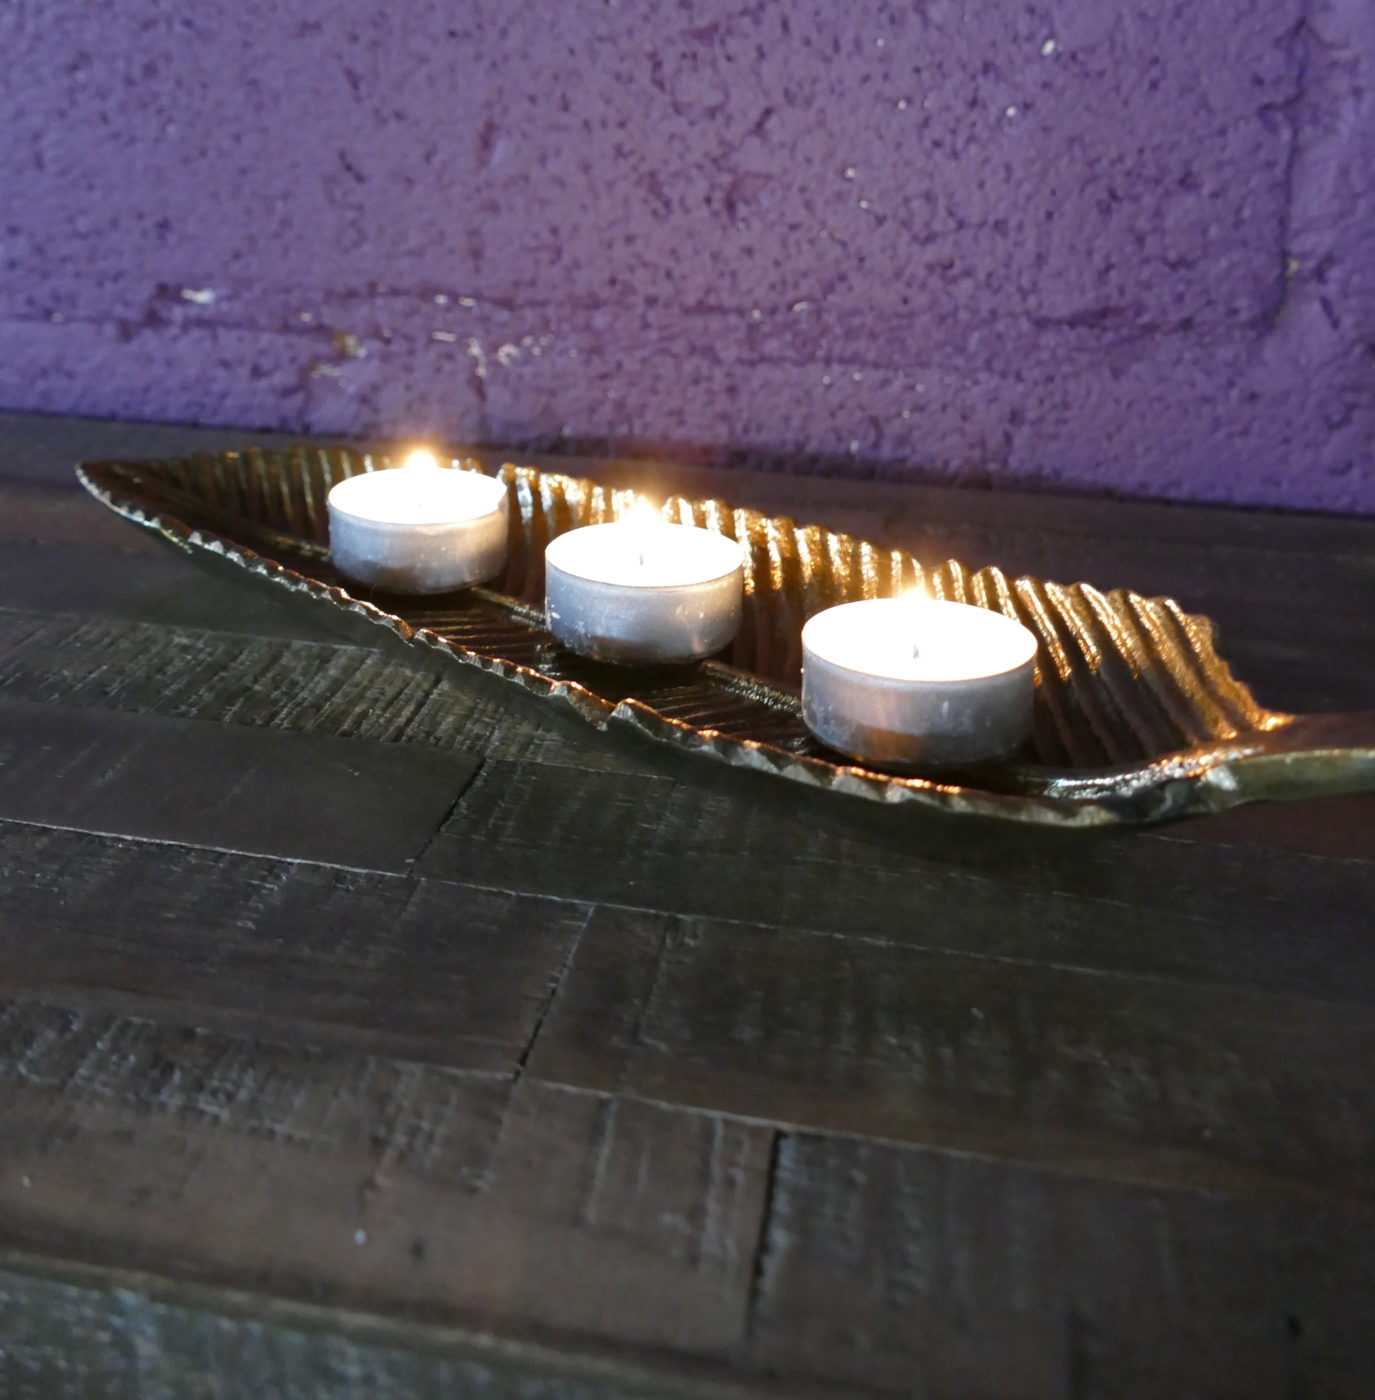 leaf tray with tea candles